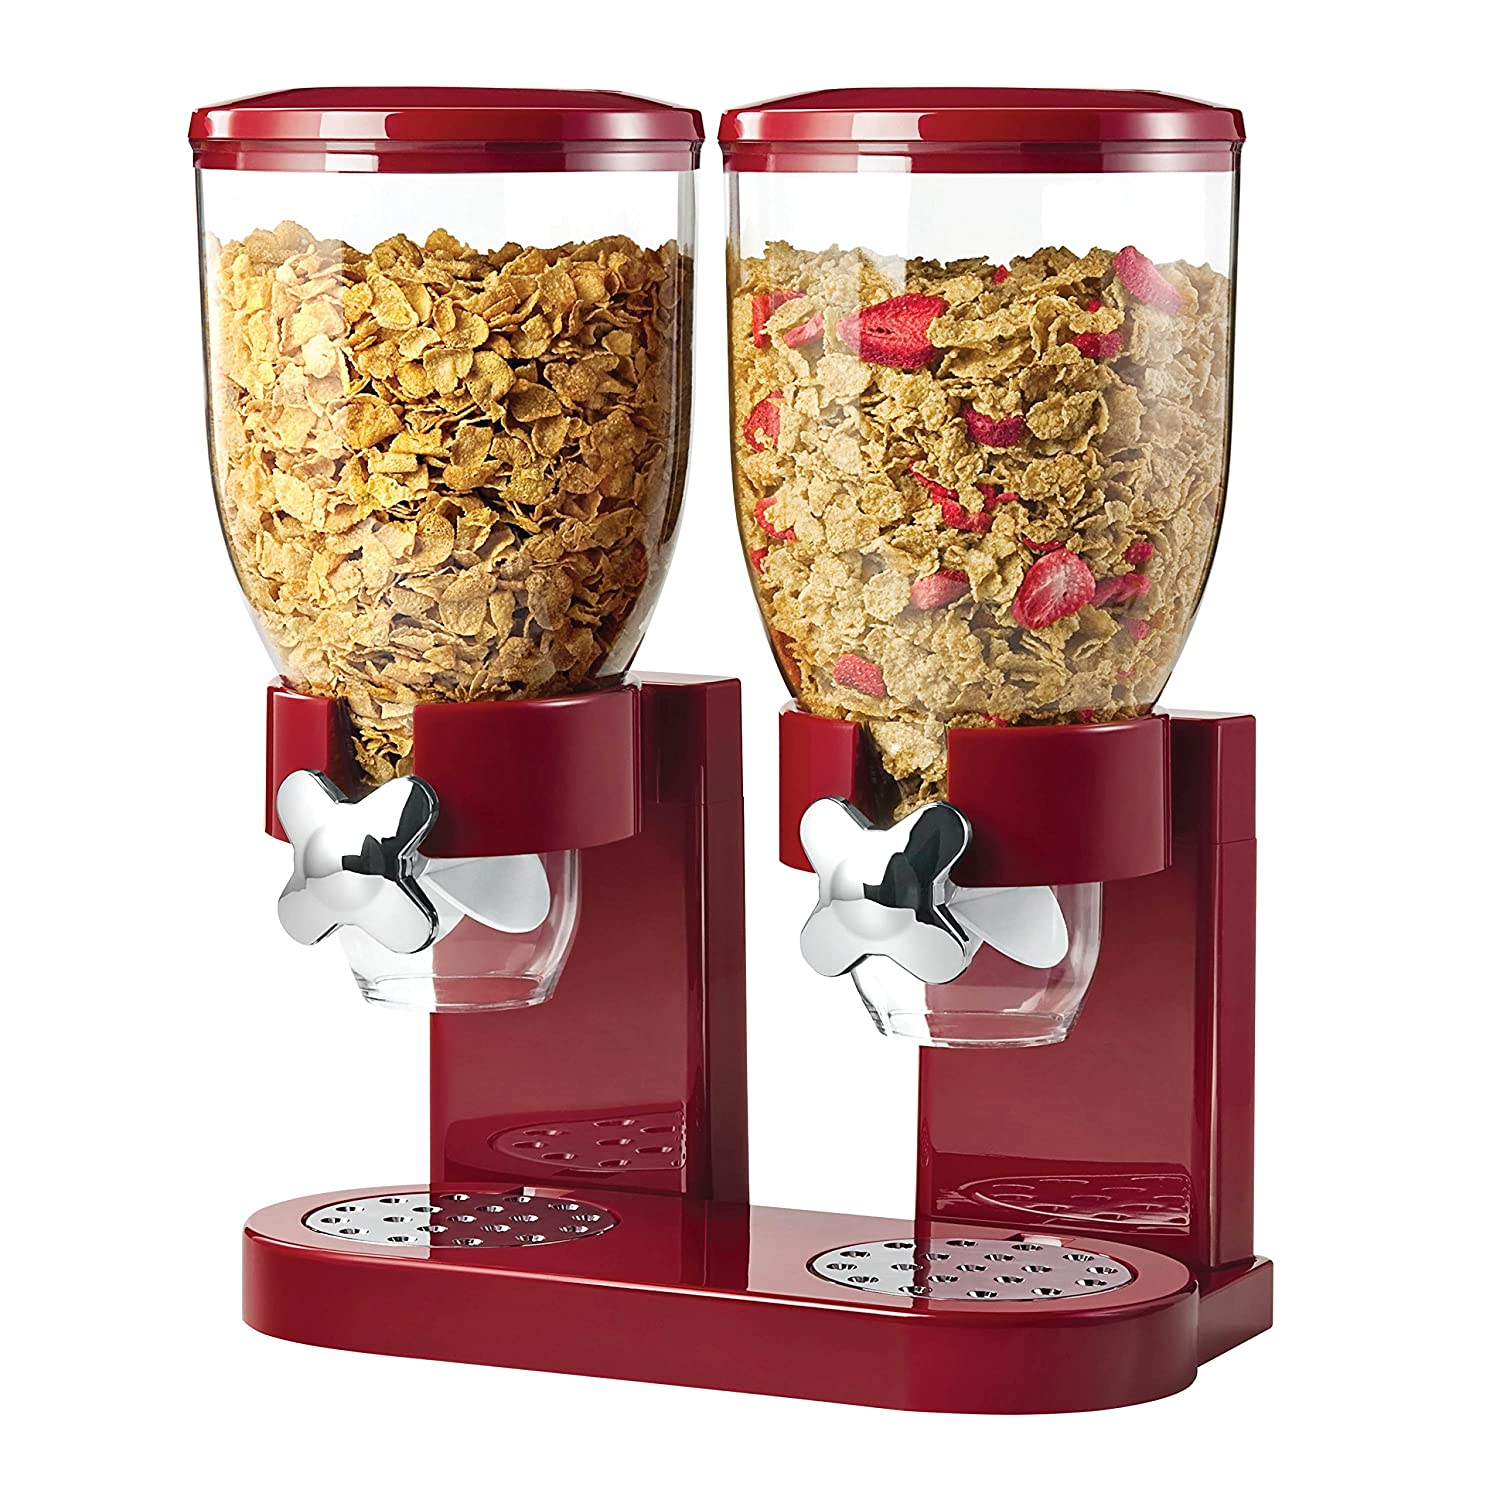 Food Dispenser Double Plastic Classic Dry Double Canister, Red/Transparent Zevro KCH-06125 Cereal Dispenser Food Storage